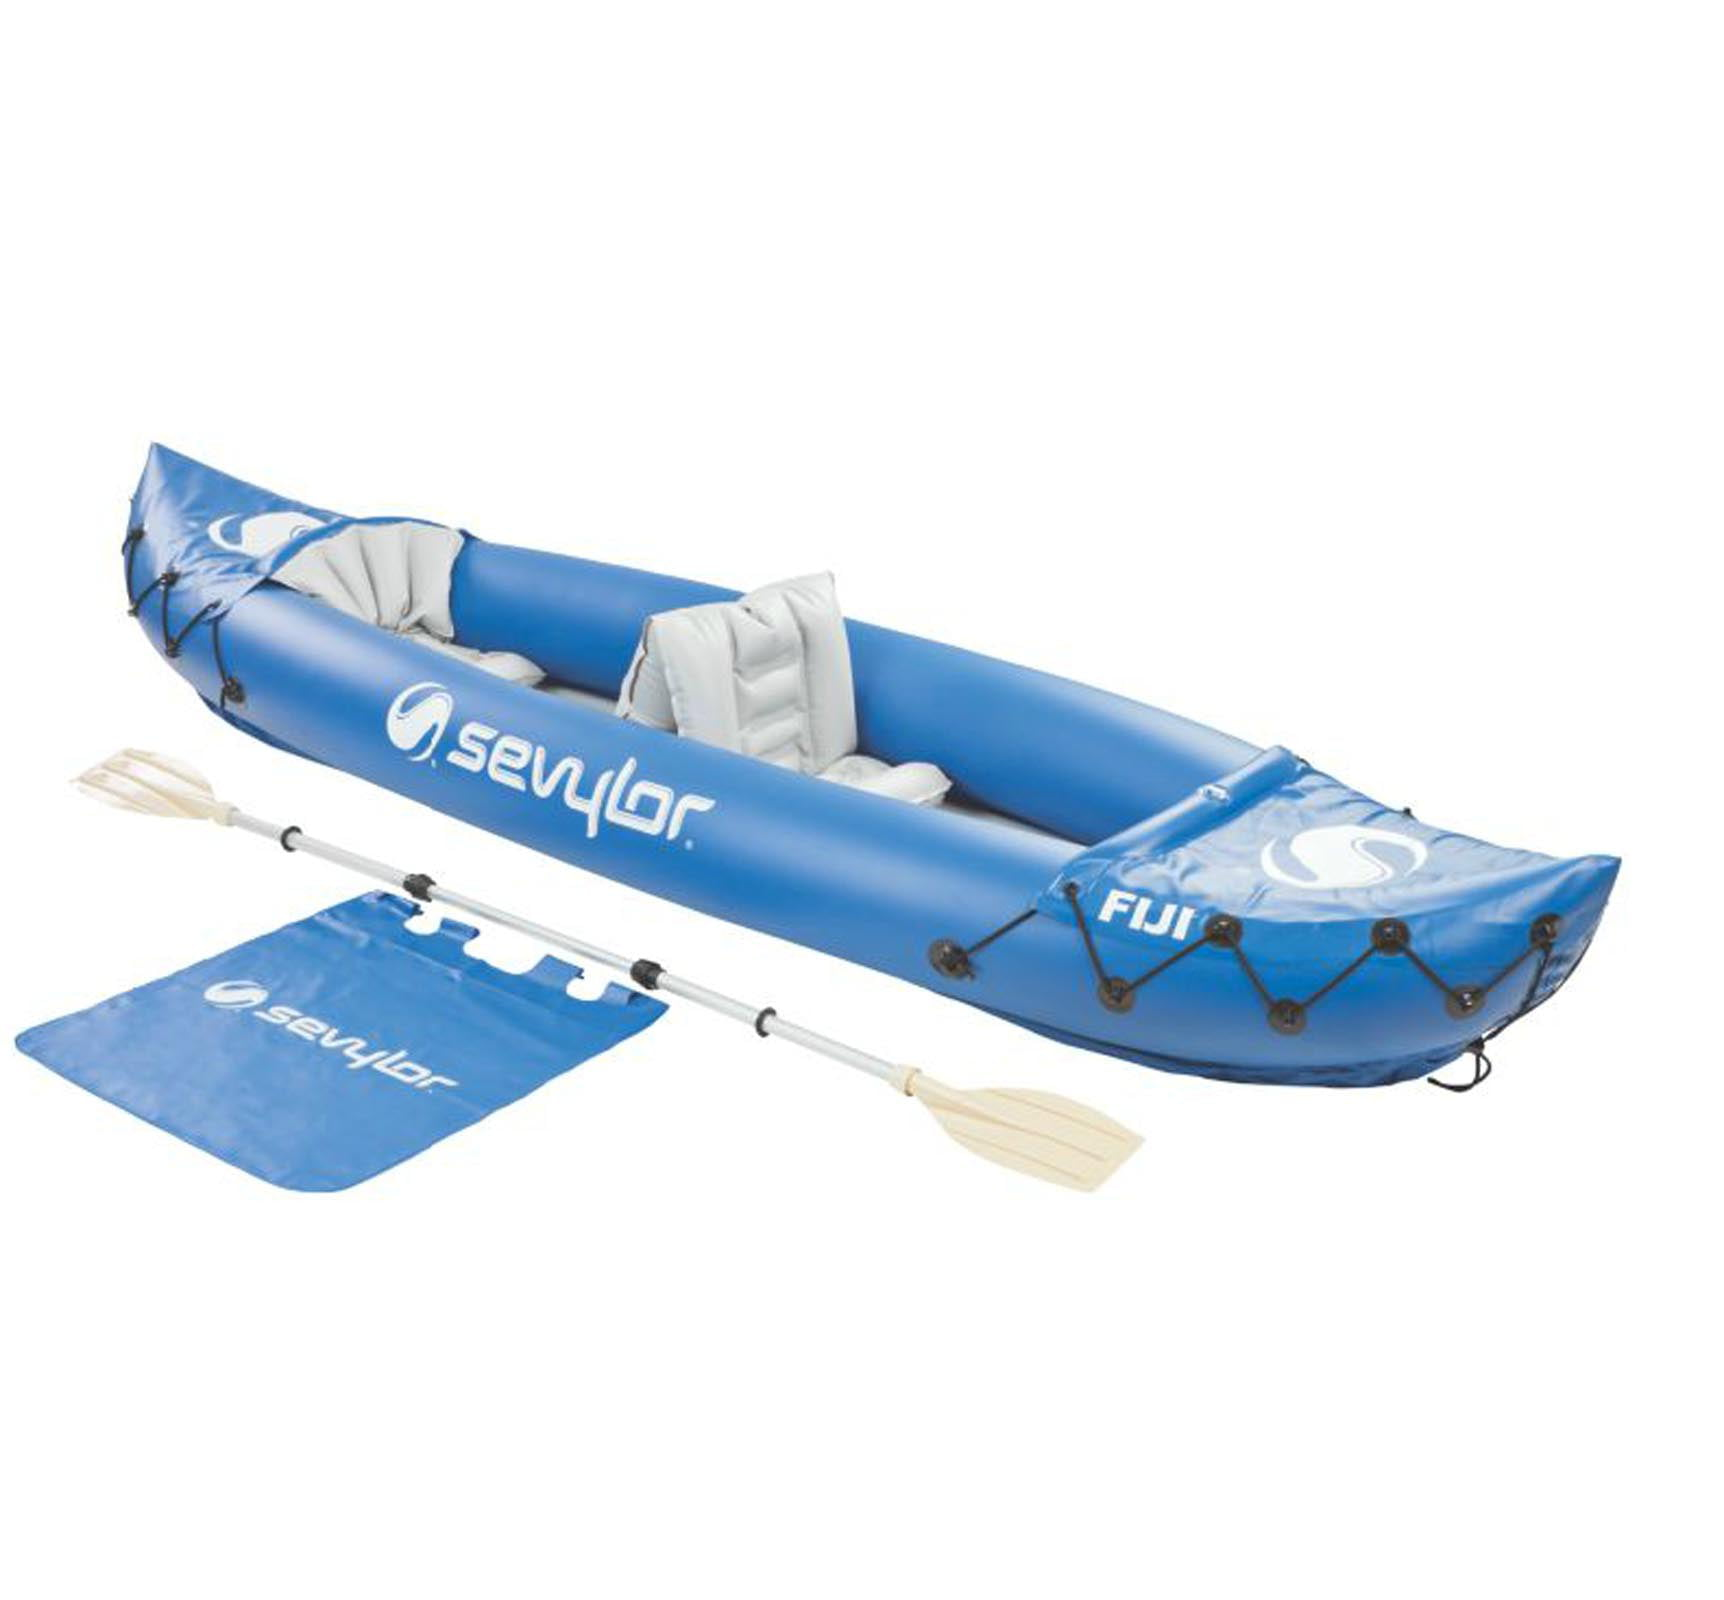 Sevylor Fiji Kayak Travel Inflatable Pack by COLEMAN